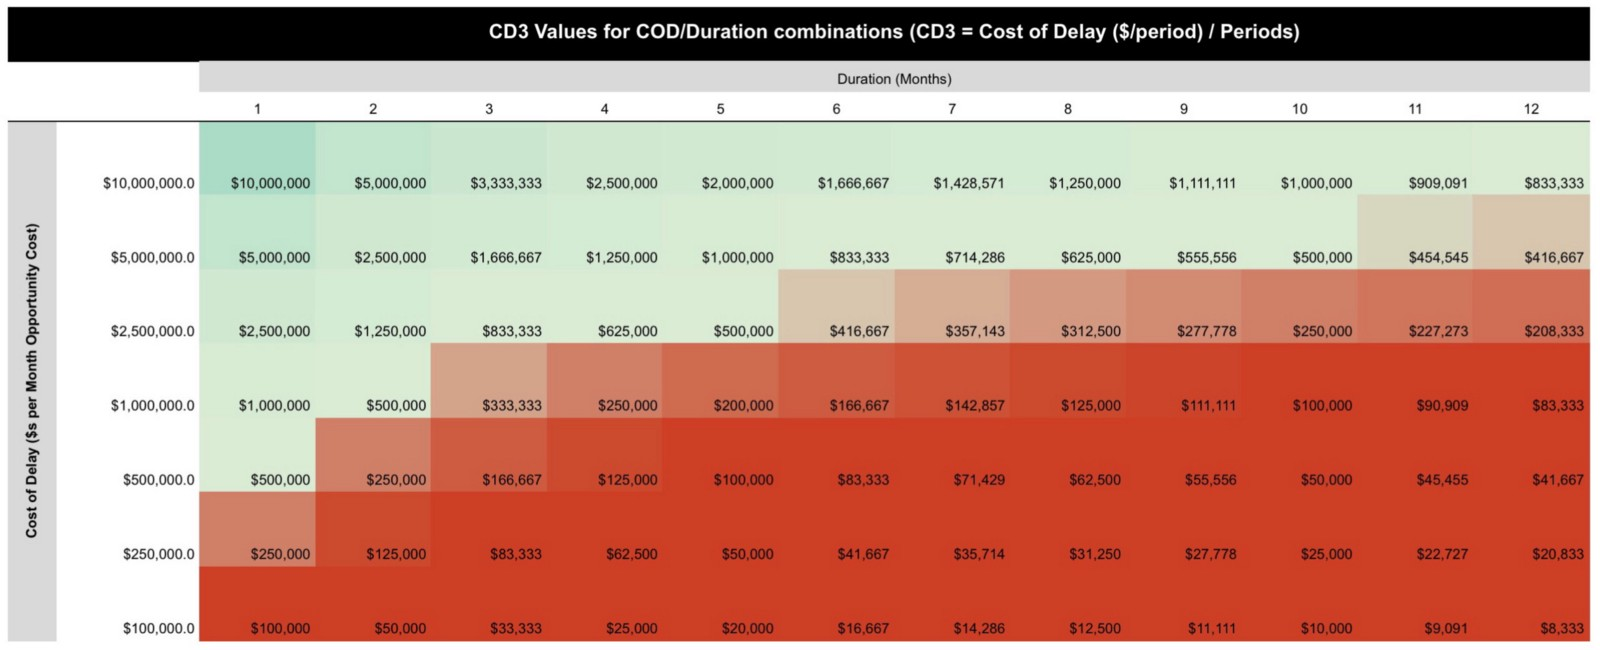 /4-prioritization-lessons-using-cost-of-delay-and-cd3-92c437804282 feature image